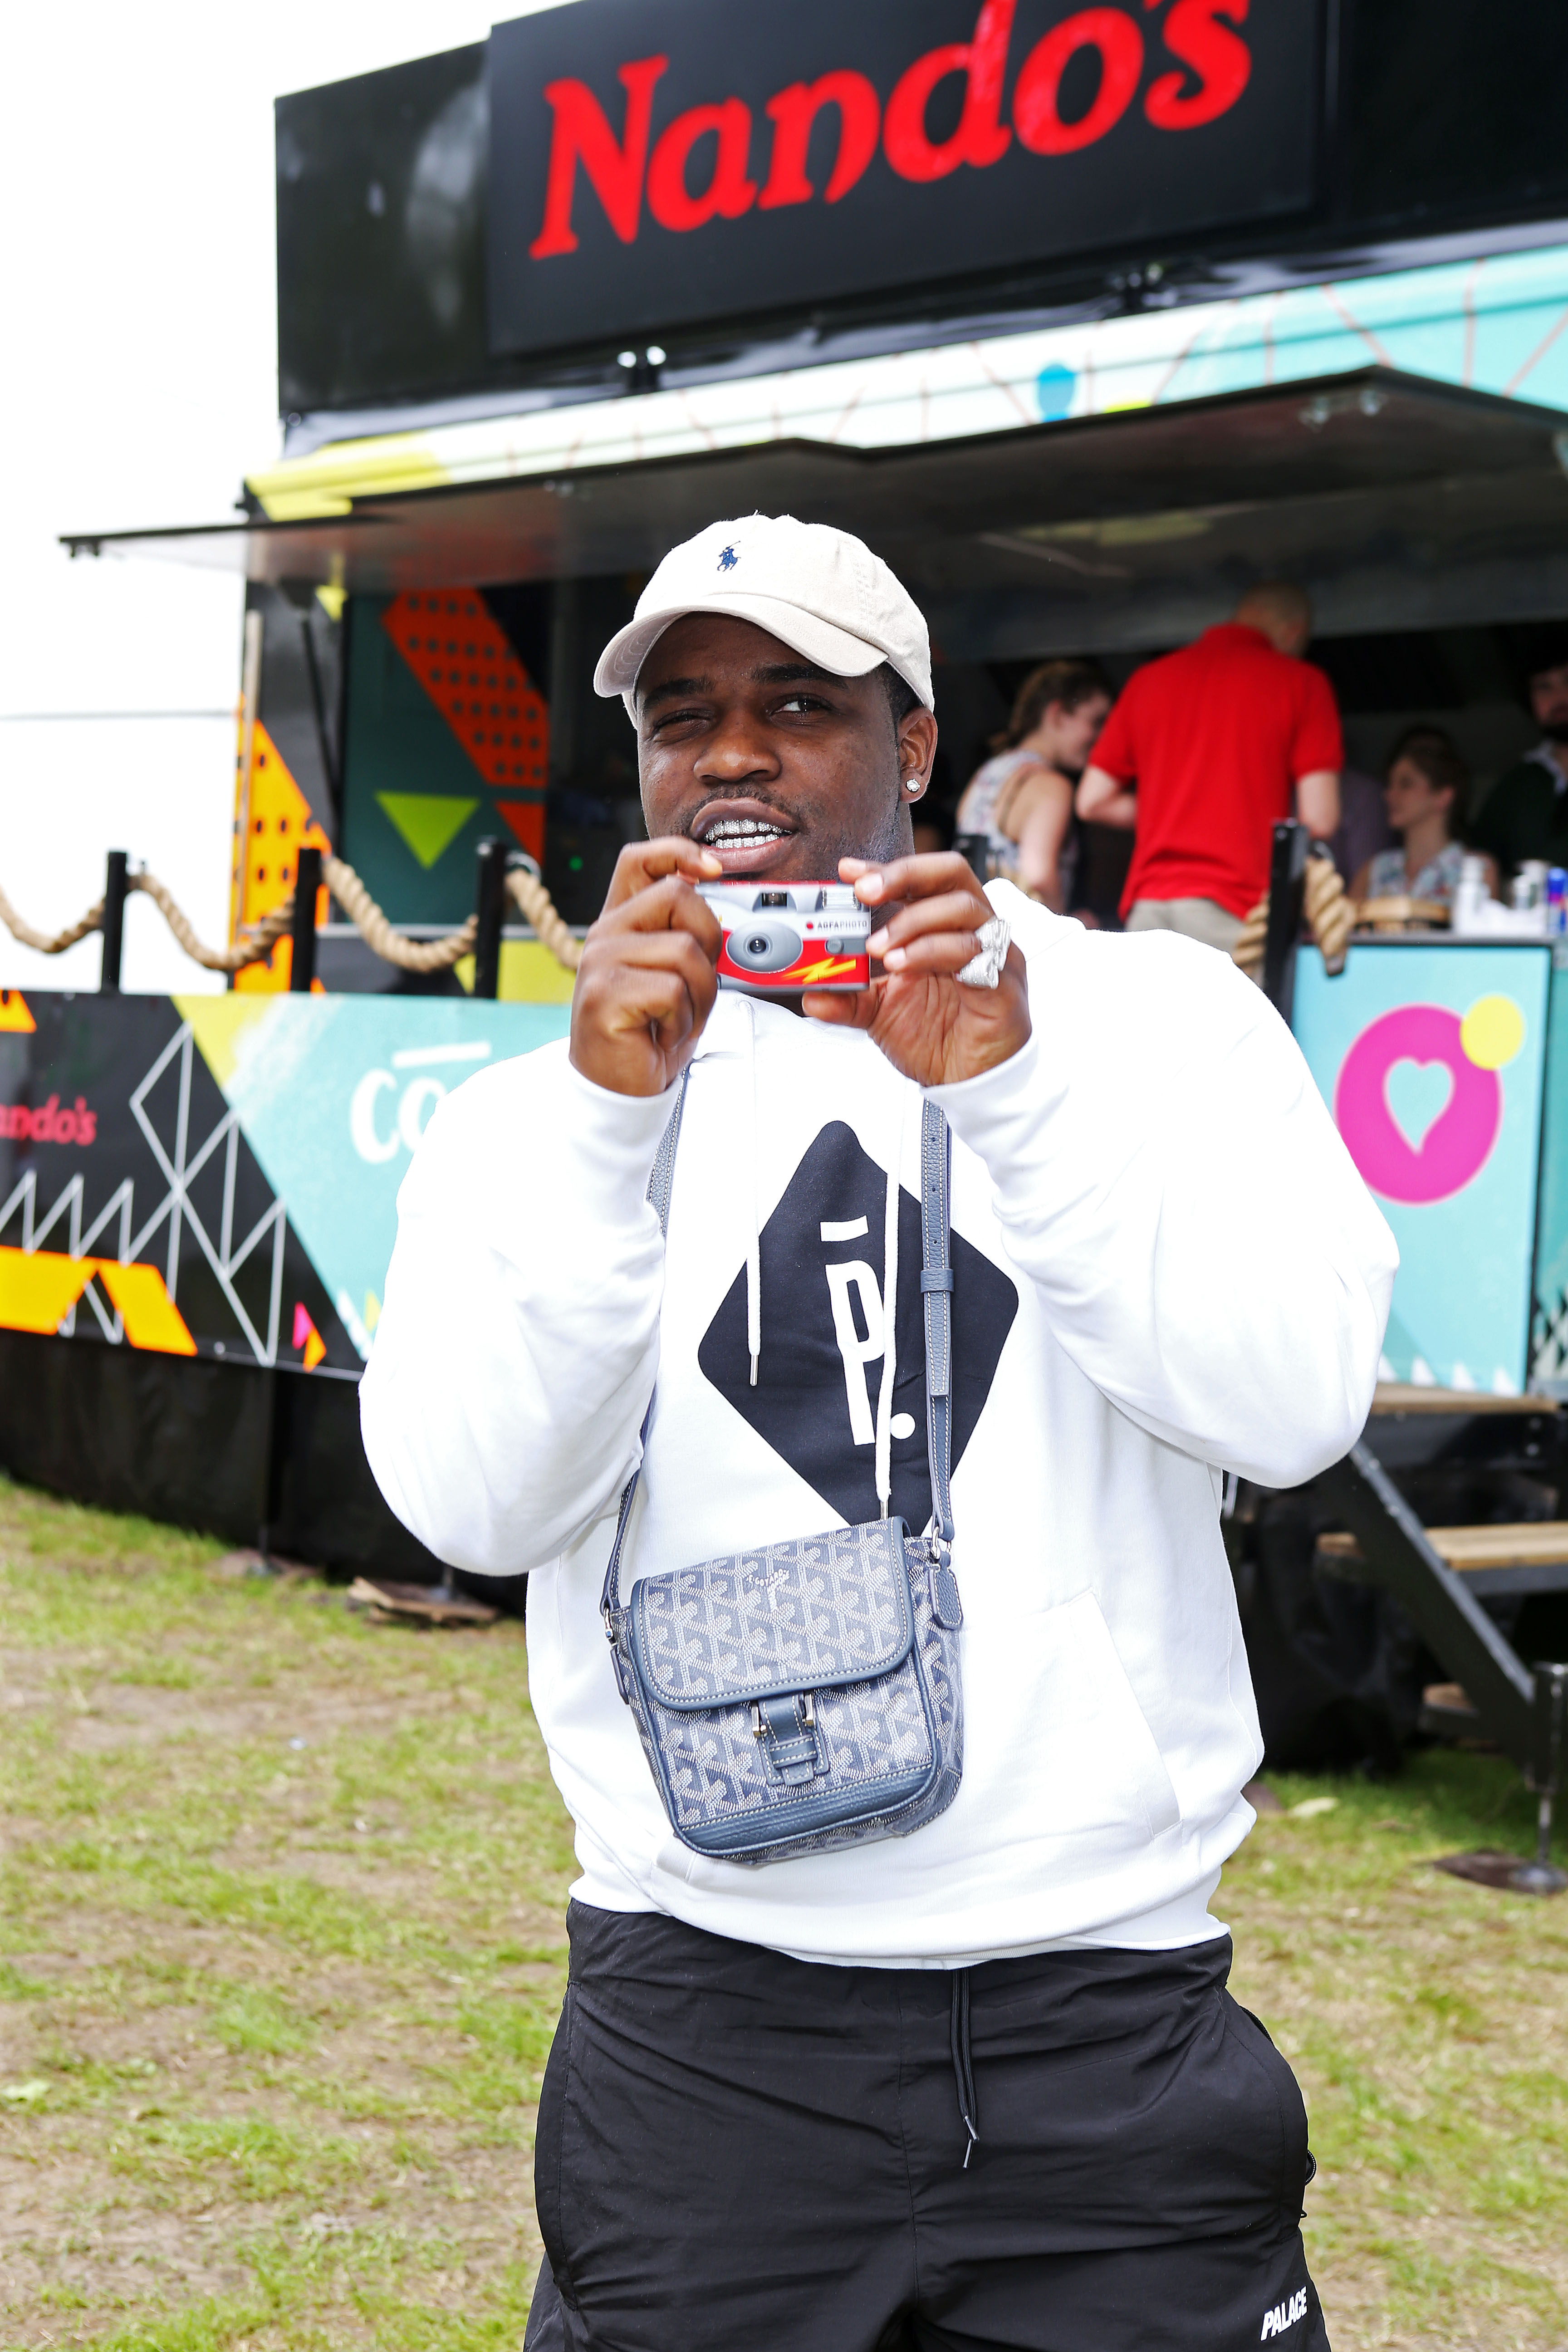 ASAP Ferg dropped by Nando's Cock o' Van before an Extra Hot performance at Wireless festival in Finsbury Park, London.